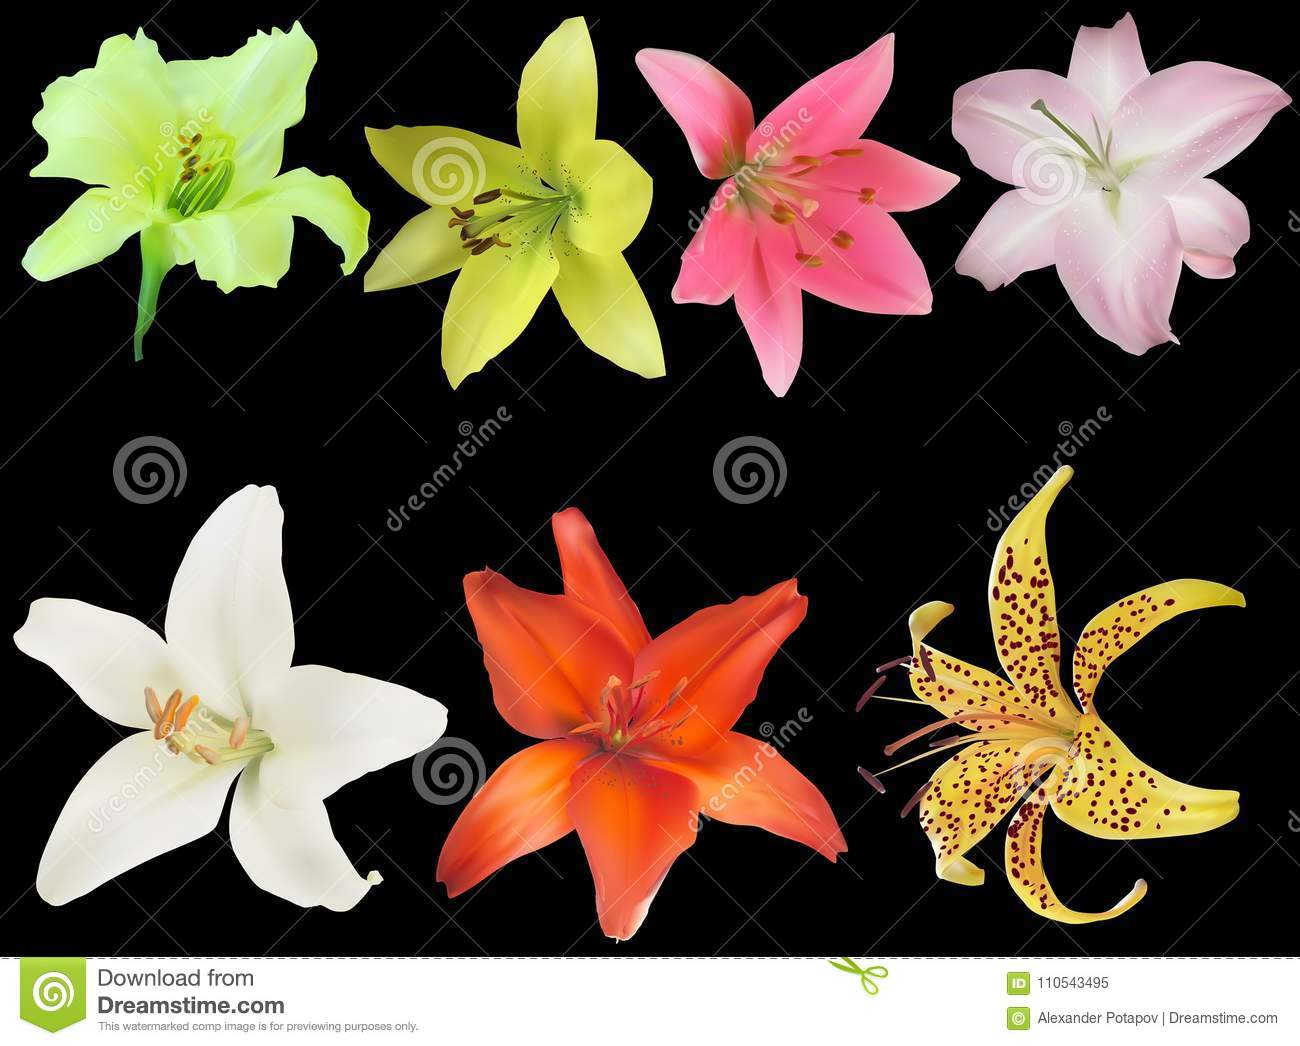 Seven isolated on black lily flower blooms collection stock vector download seven isolated on black lily flower blooms collection stock vector illustration of petal izmirmasajfo